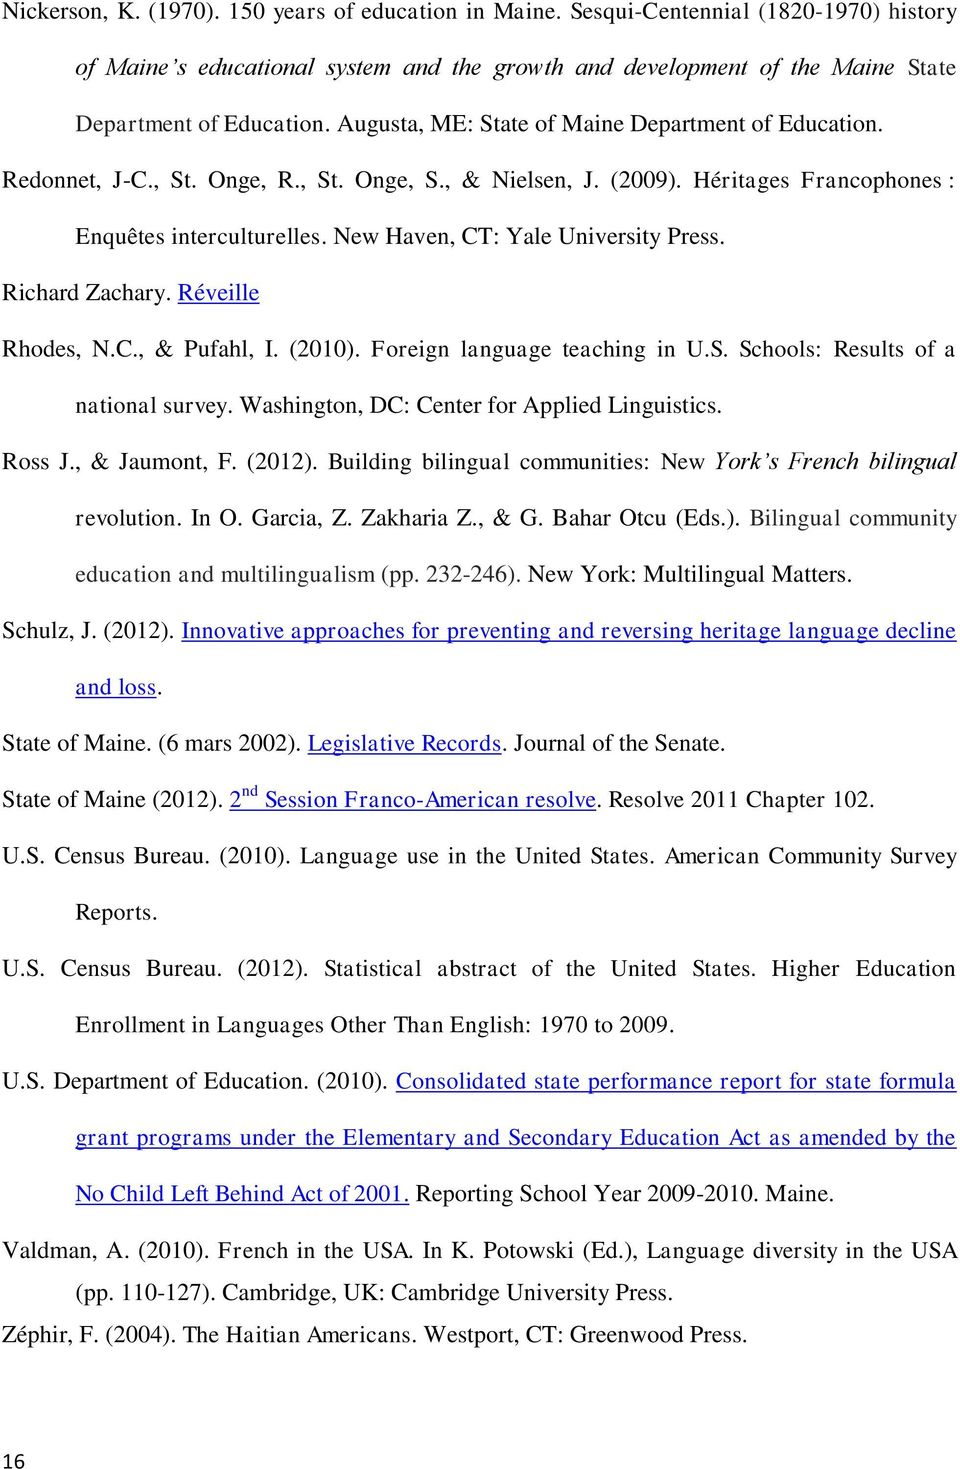 New Haven, CT: Yale University Press. Richard Zachary. Réveille Rhodes, N.C., & Pufahl, I. (2010). Foreign language teaching in U.S. Schools: Results of a national survey.